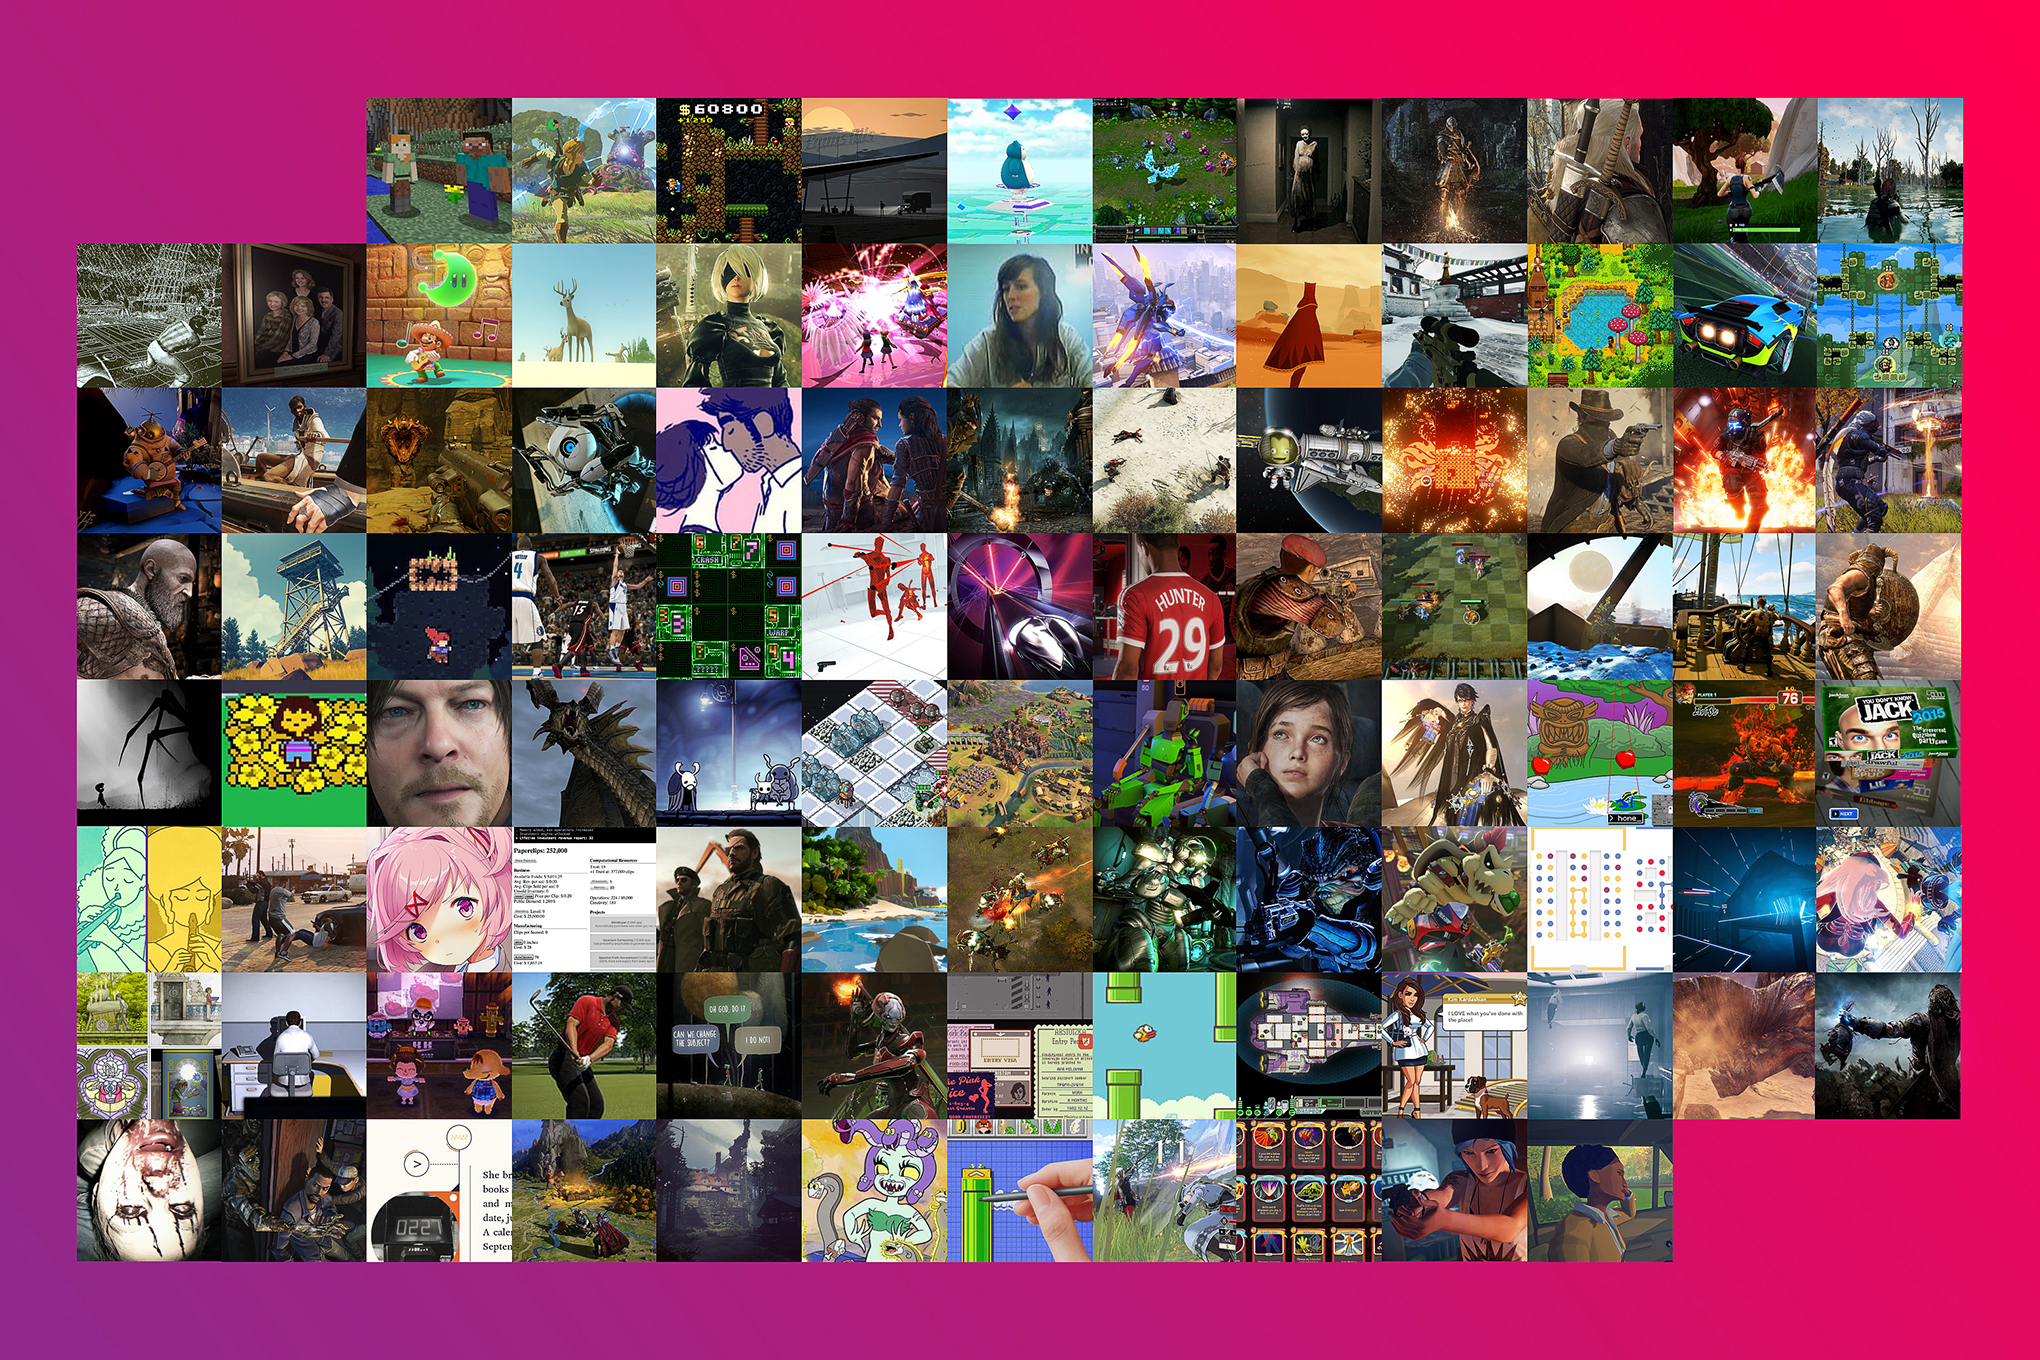 Mosaic of the top 100 games of the decade